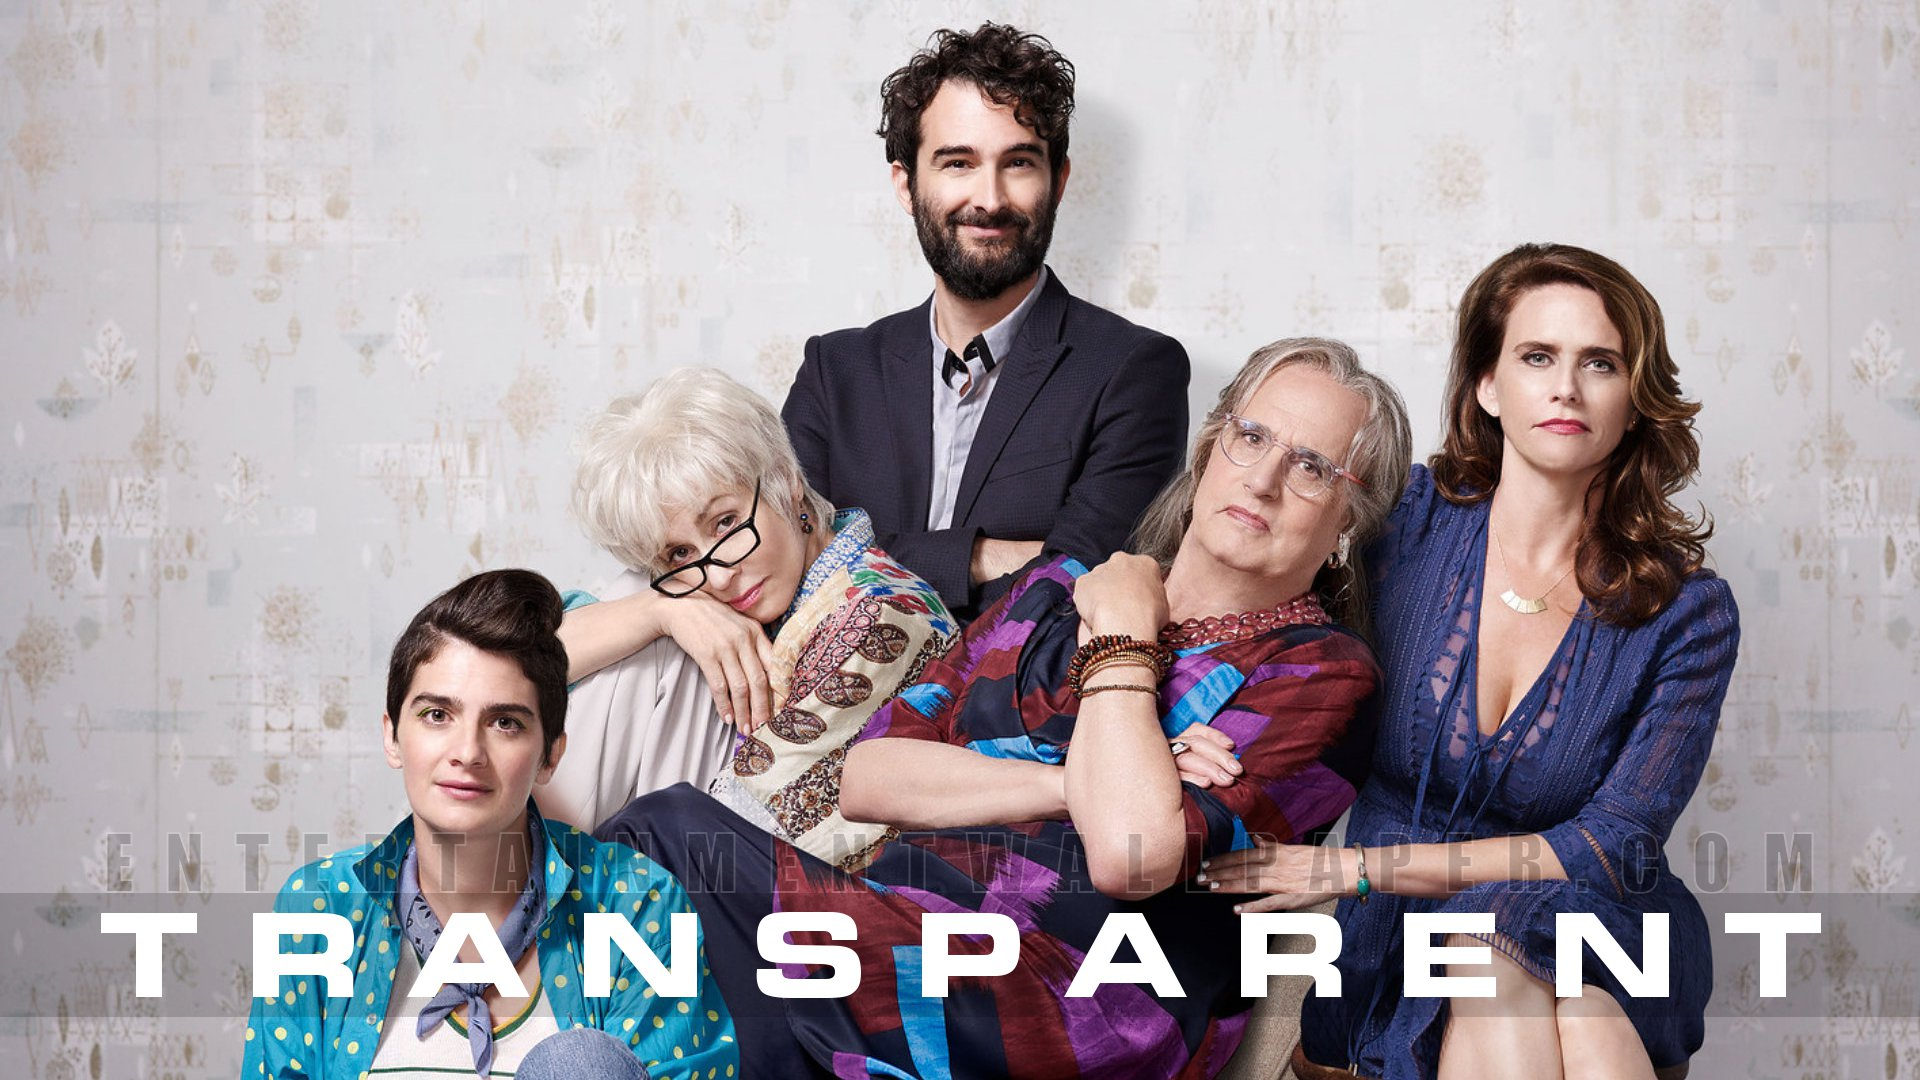 transparent (tv series) images transparent wallpapers hd wallpaper